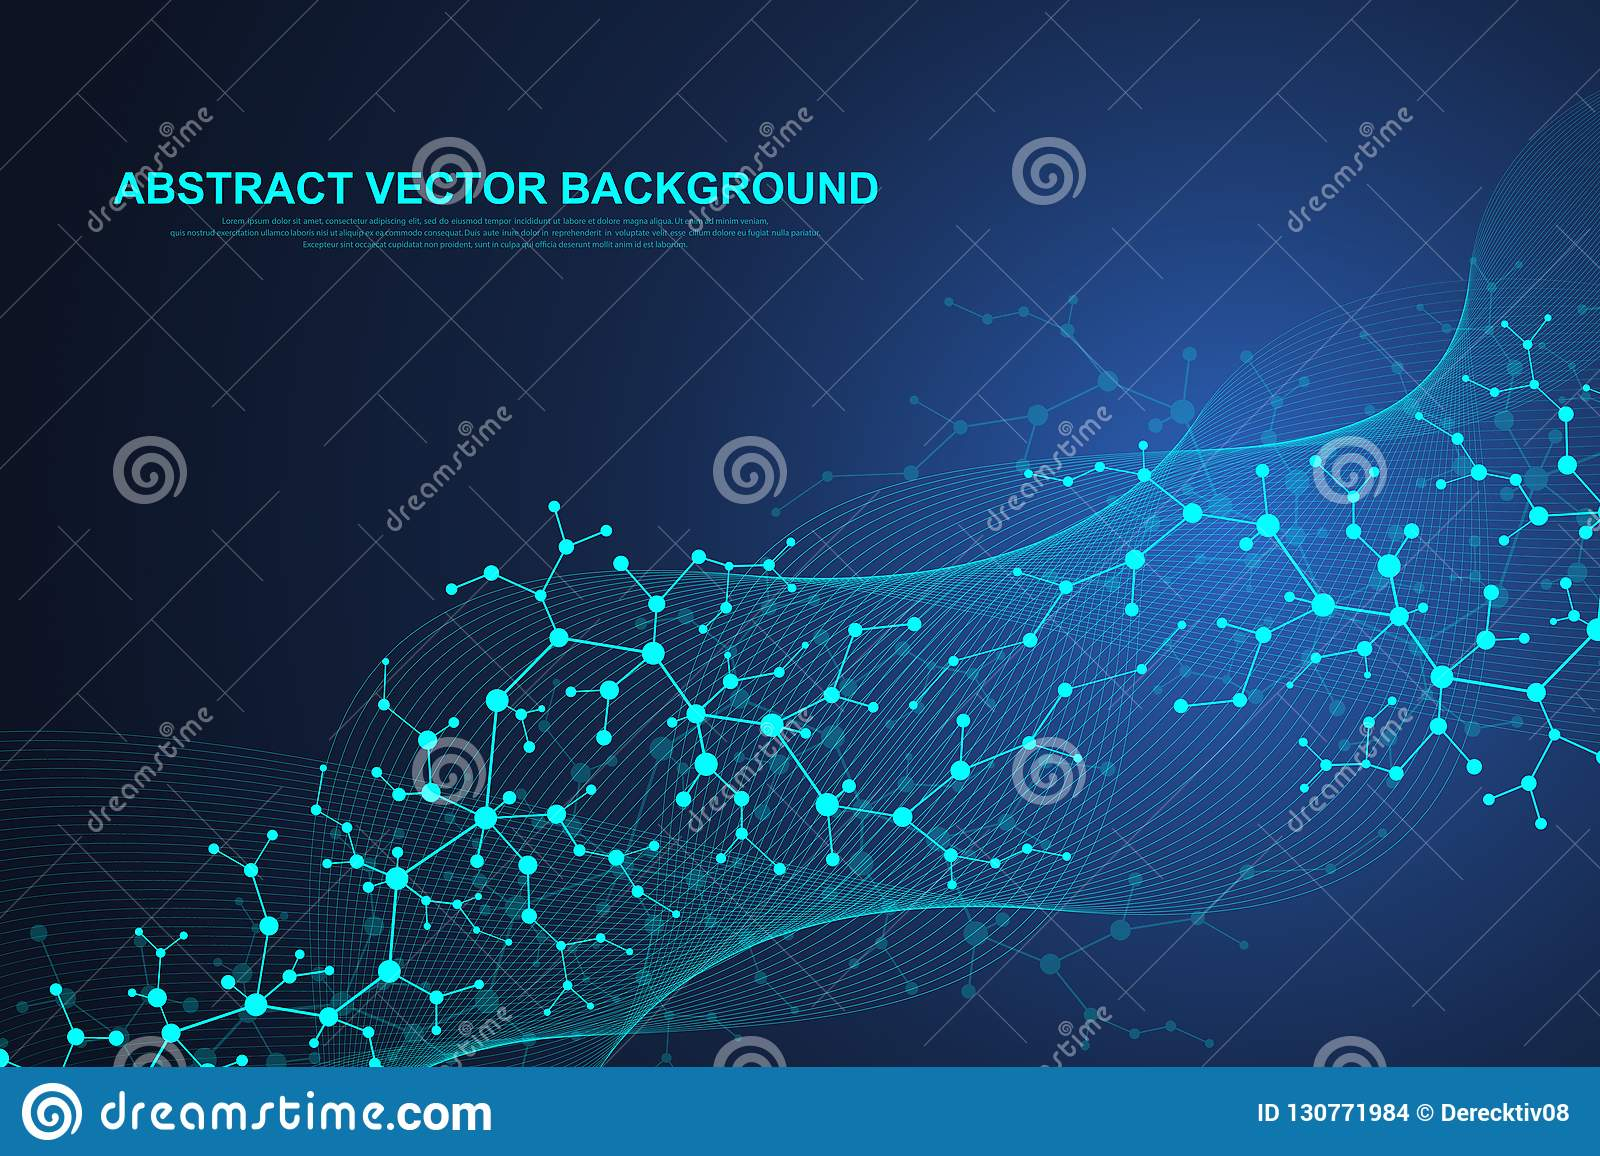 Scientific molecule background for medicine, science, technology, chemistry. Waves flow. Wallpaper or banner with a DNA